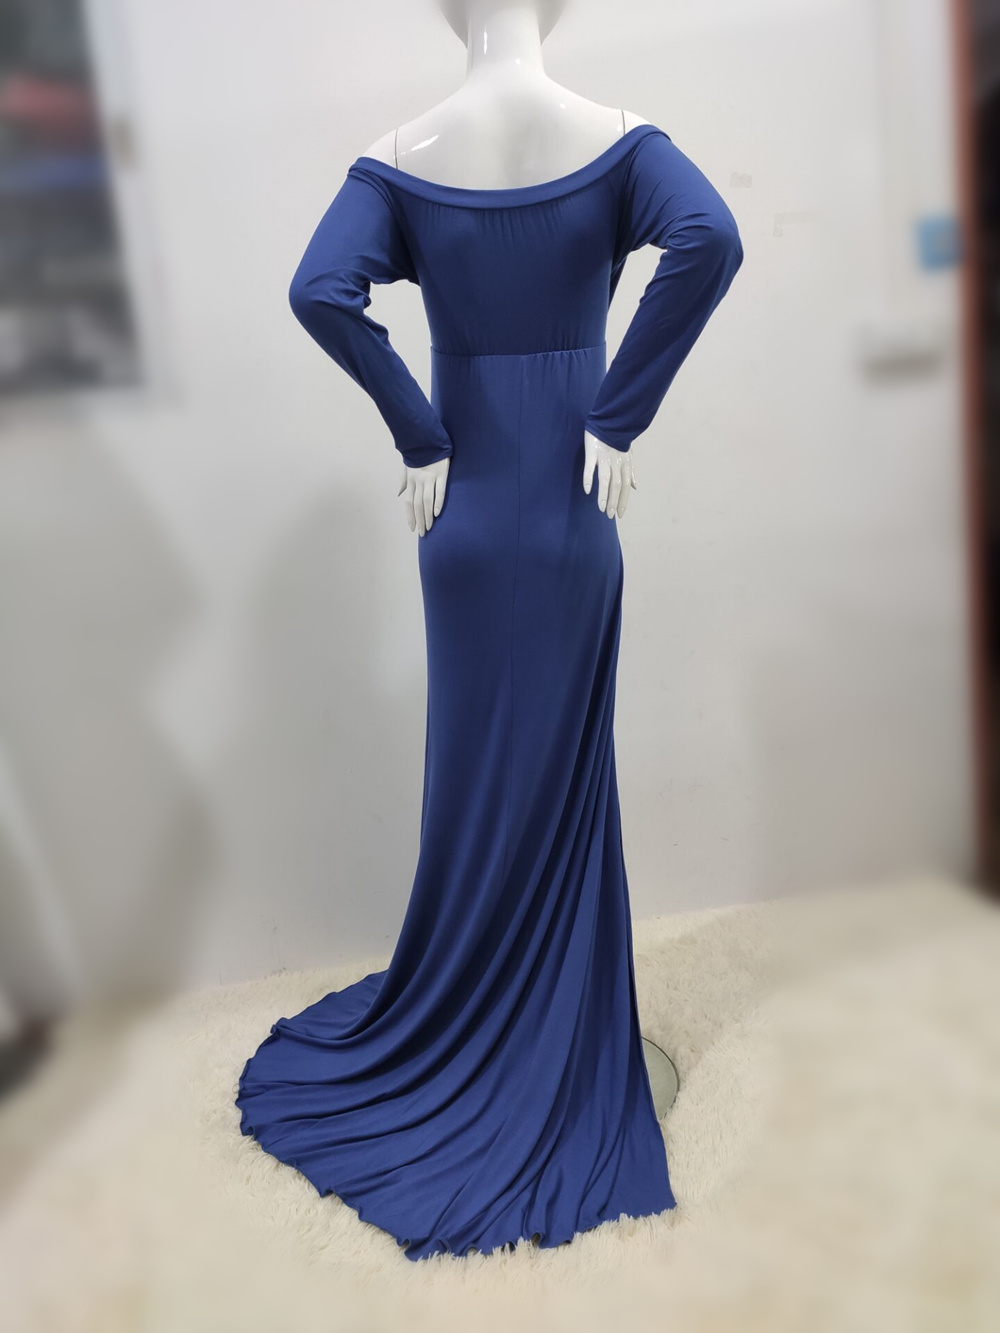 Sexy Shoulderless Maternity Dresses For Photo Shoot Maxi Gown Split Side Women Pregnant Photography Props Long Pregnancy Dress (27)